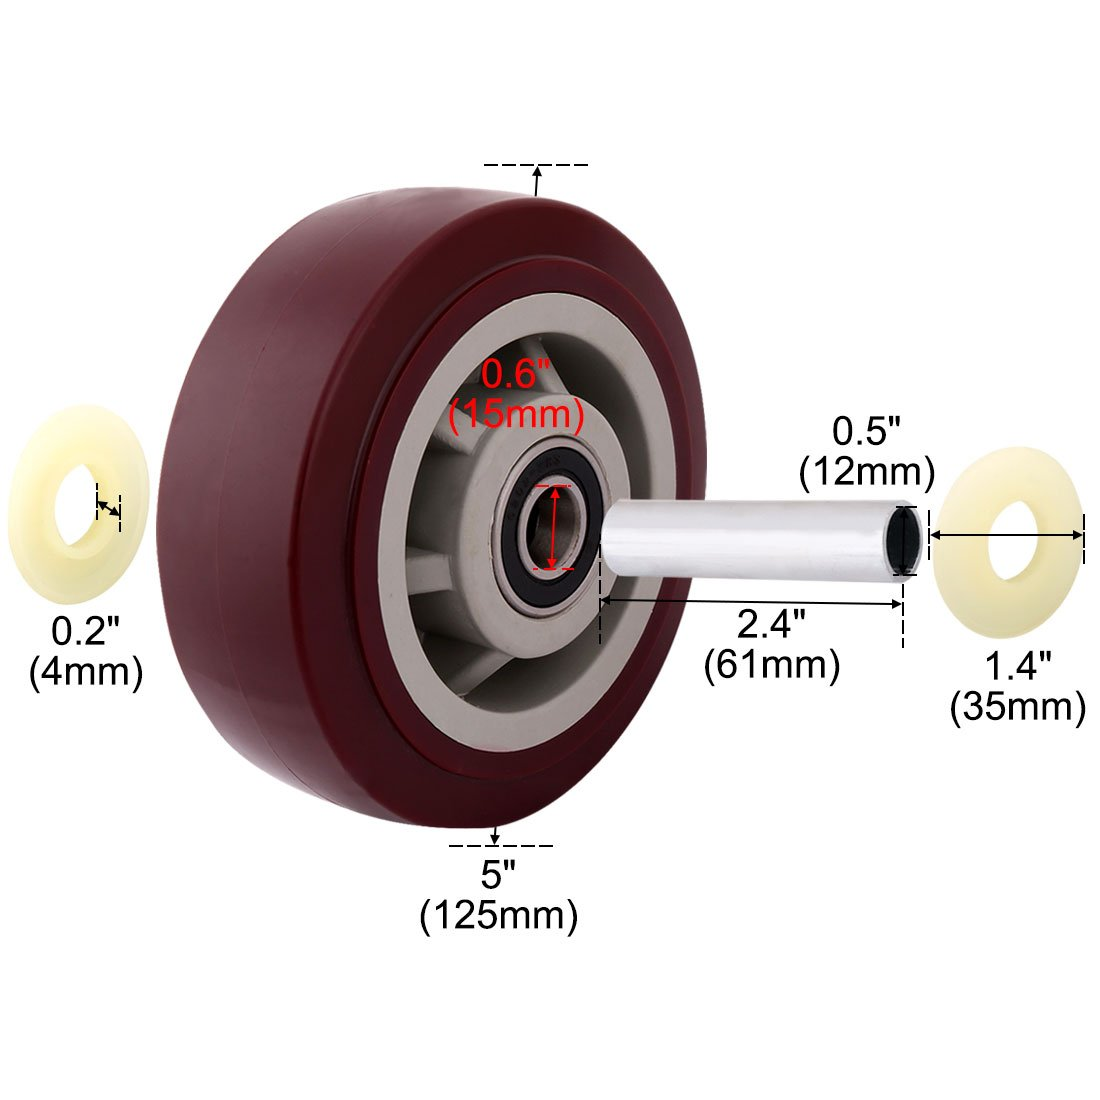 uxcell 5'' Polyurethane on Hard plastic Wheel, Replacement For Carts, Furniture, Dolly, Workbench, Trolley, Wheel Only, Red Set of 2 by uxcell (Image #1)